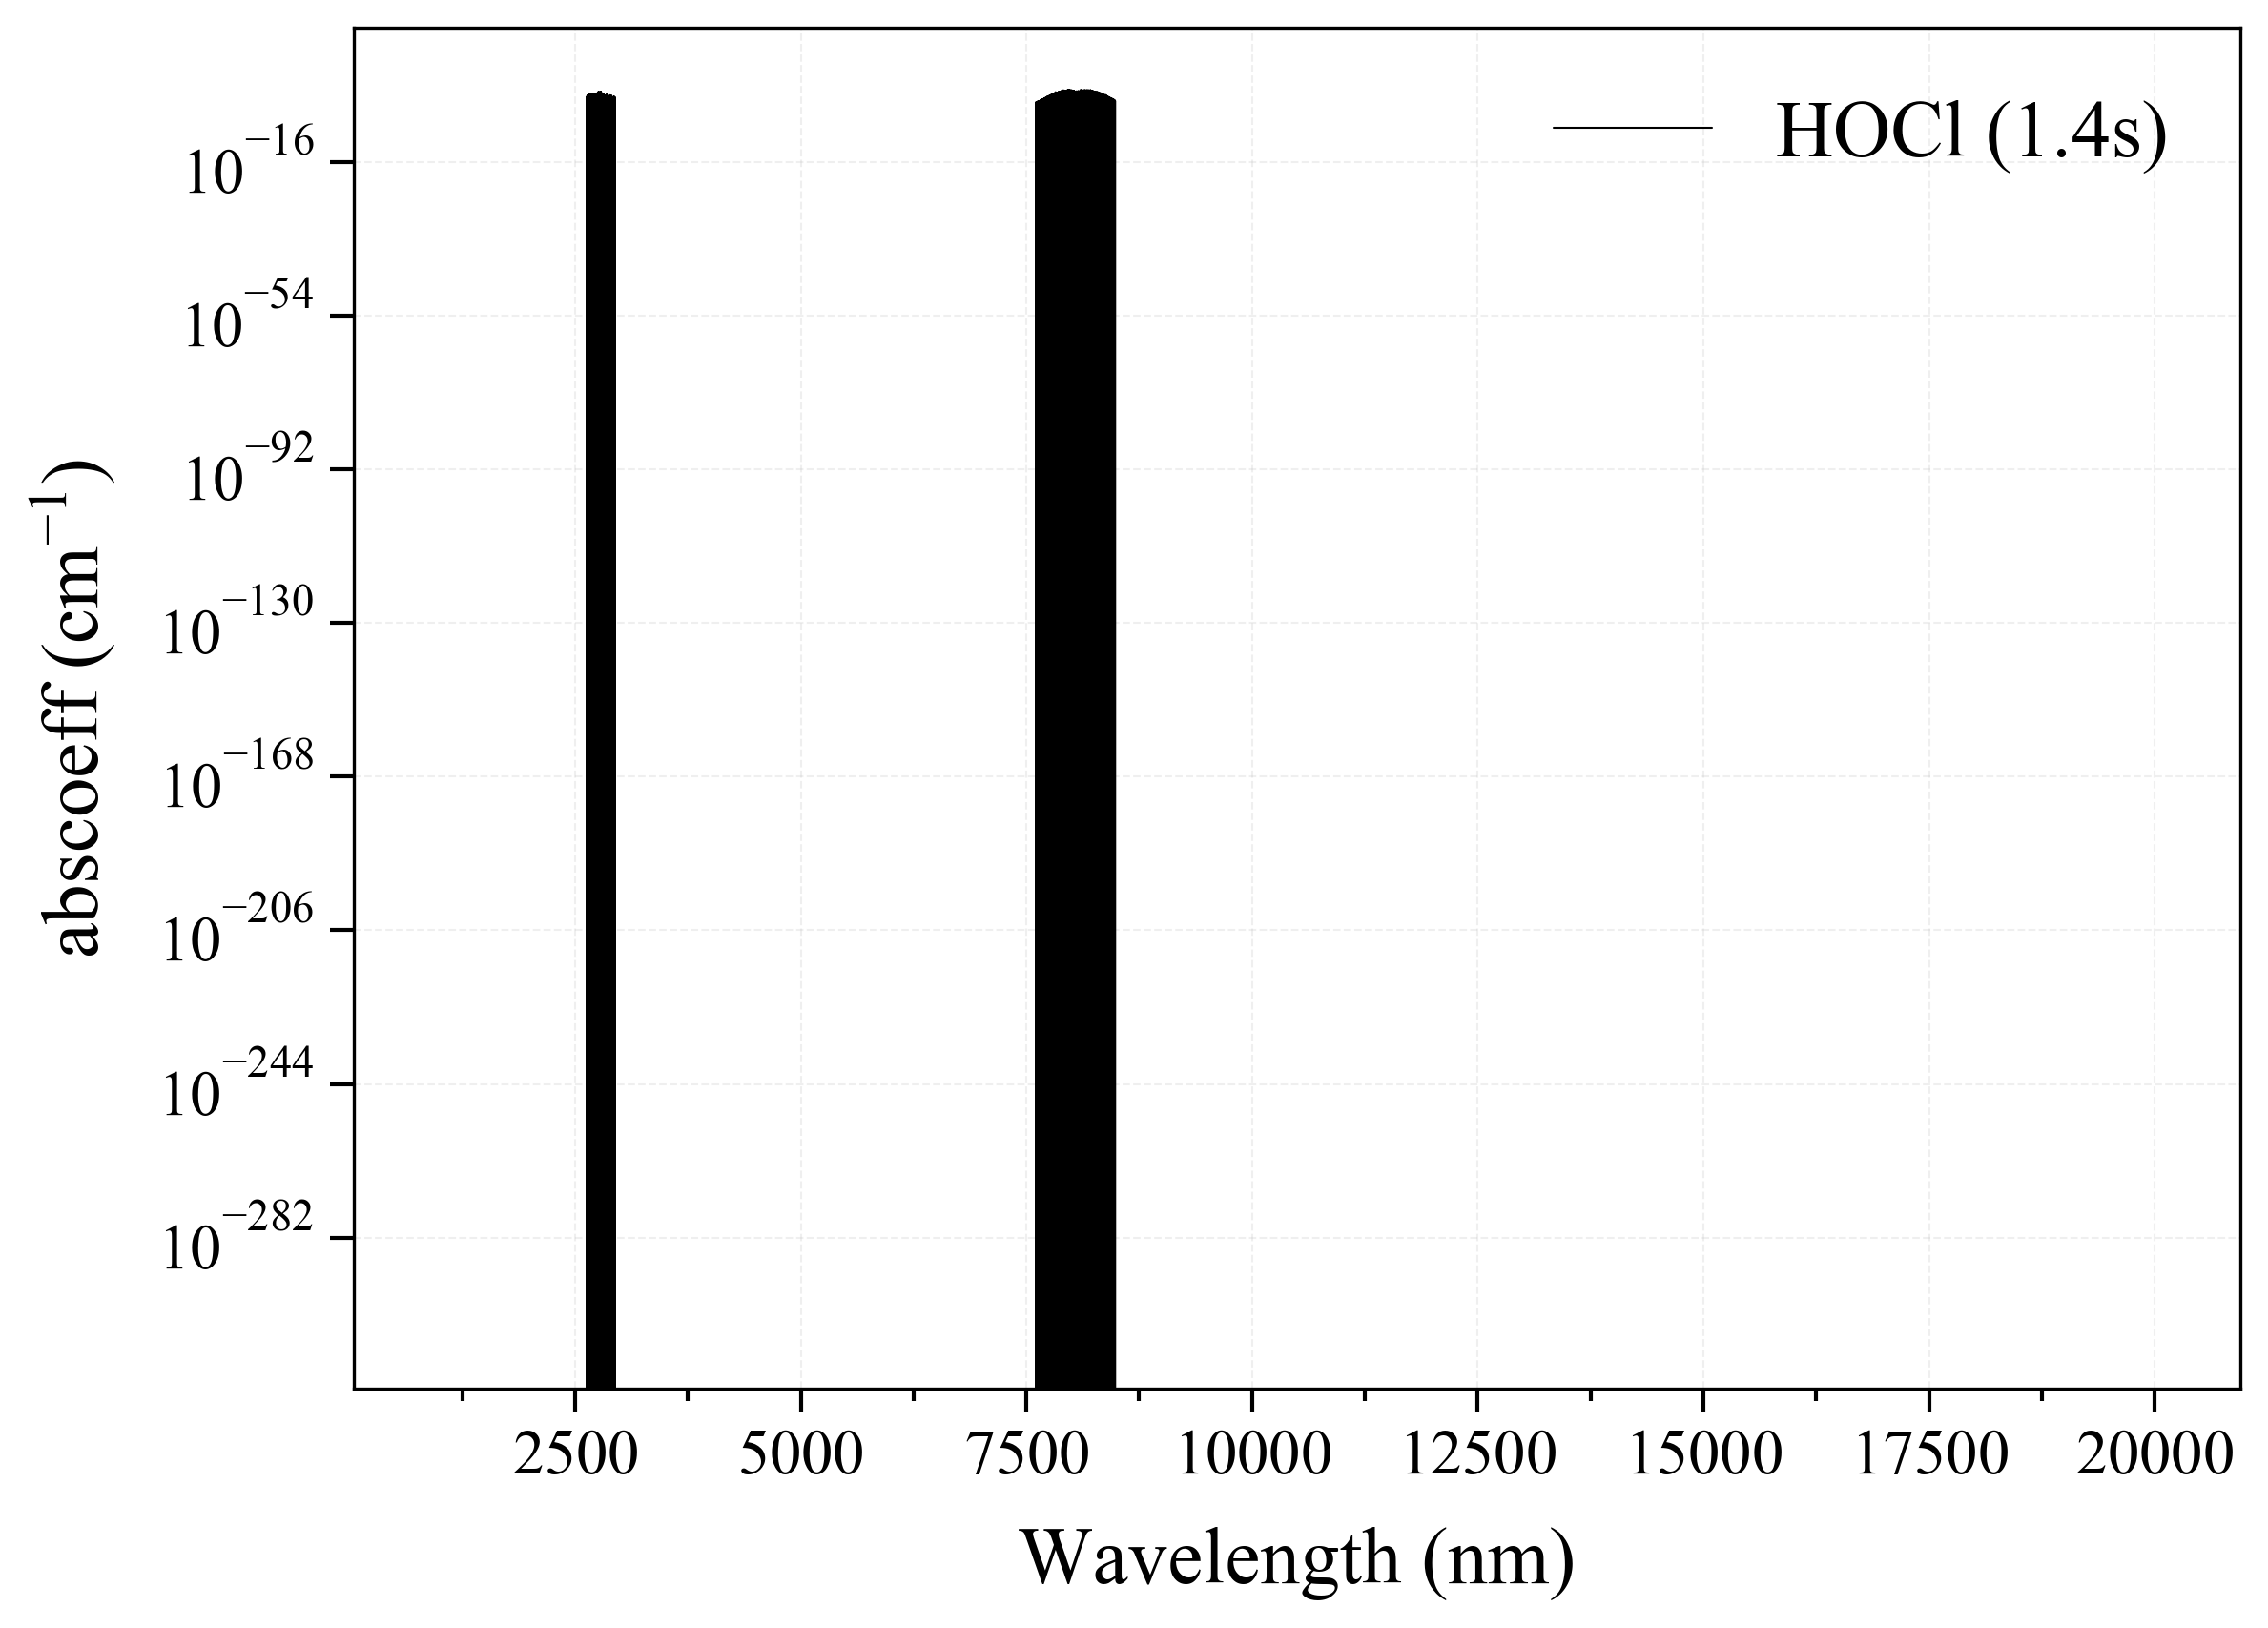 Hypochlorous Acid HOCl infrared absorption coefficient